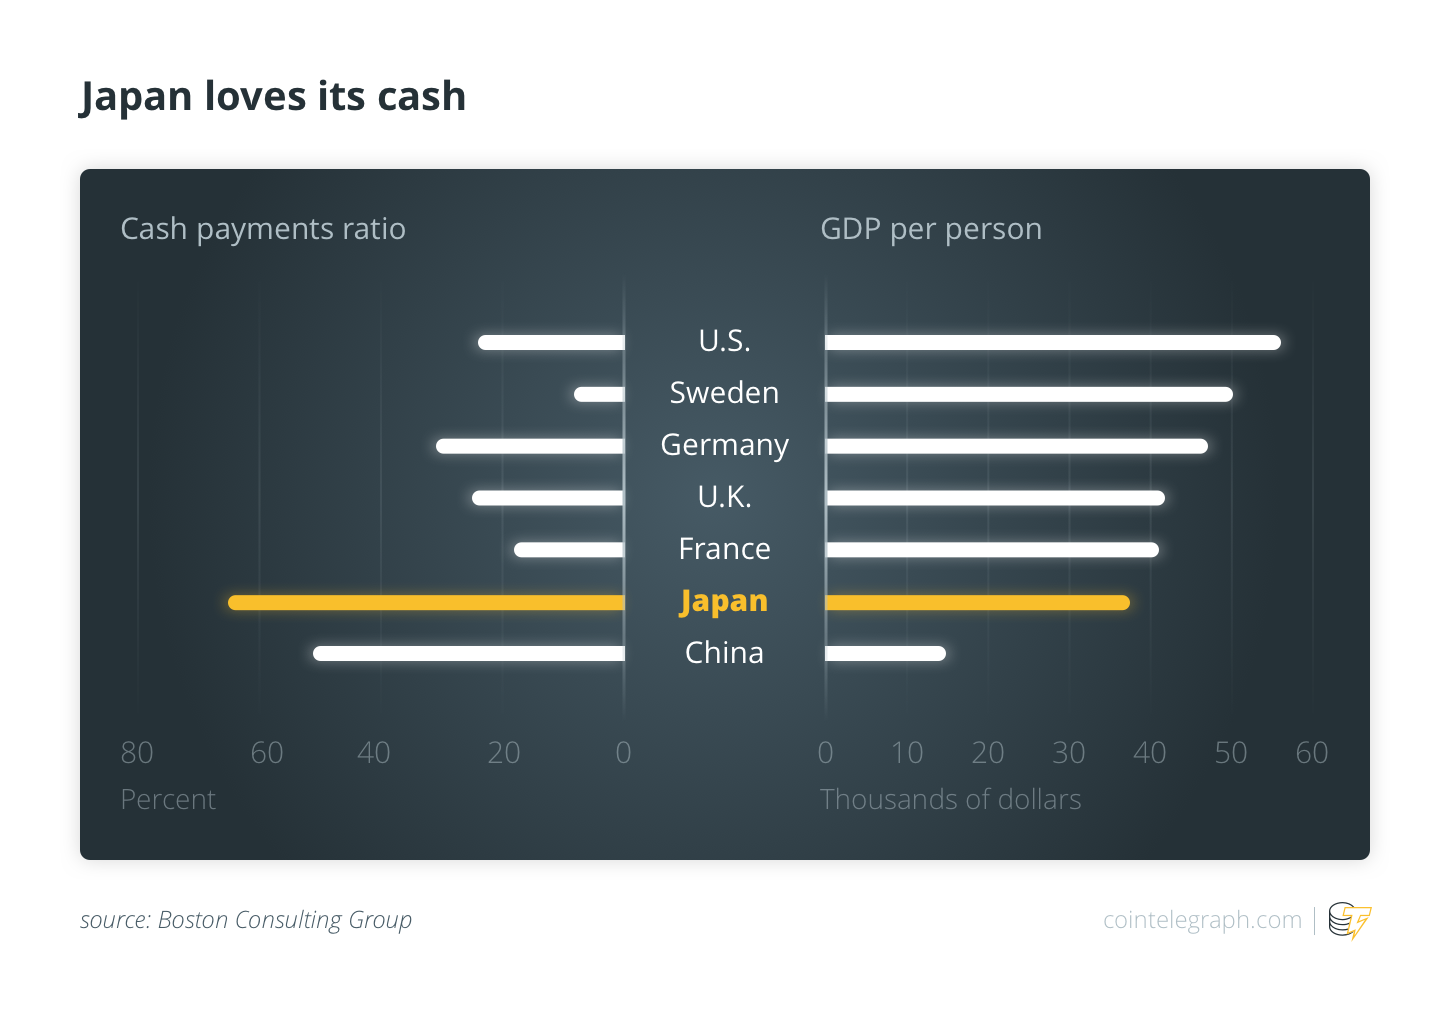 Japan loves its cash